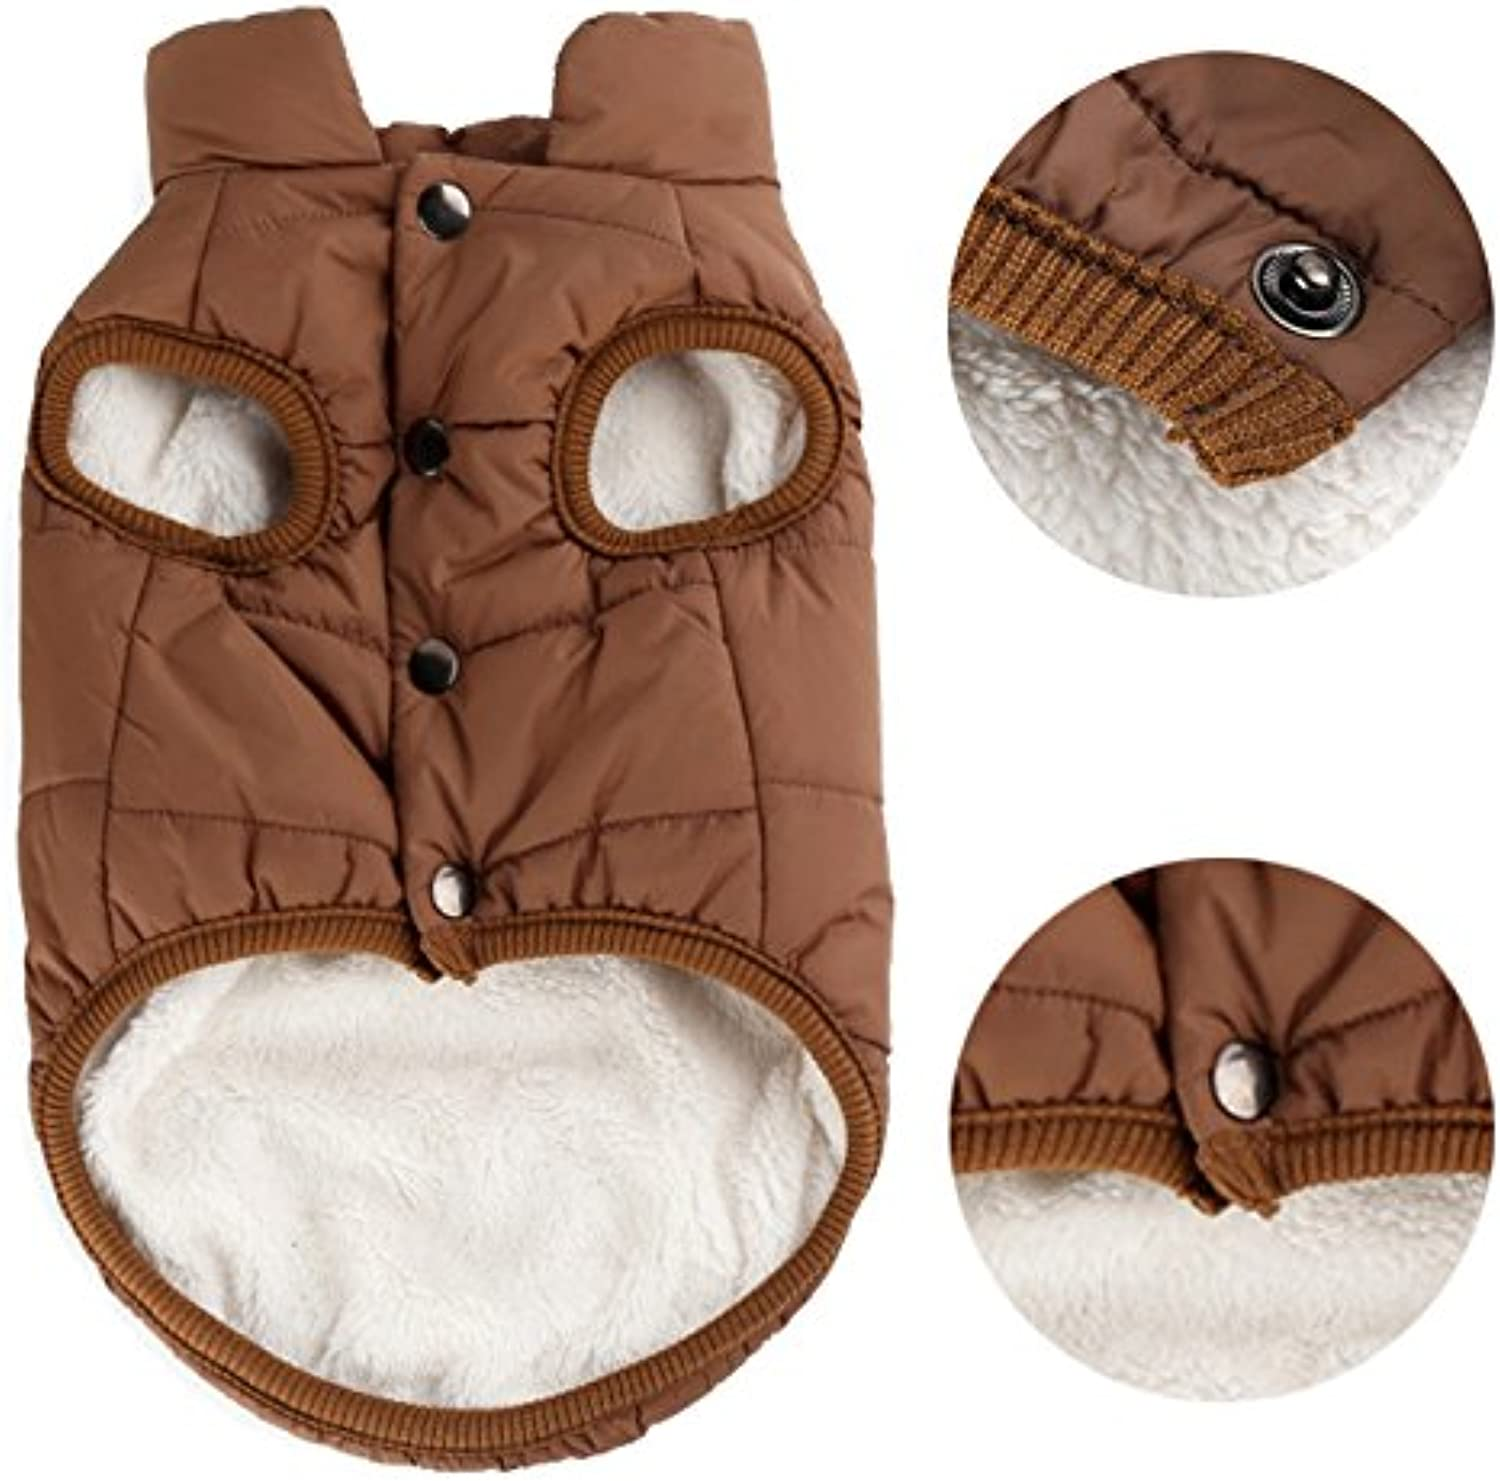 PENIVO Pet Dogs Clothing, Winter Warm Coats Jackets Small Medium Large Dogs CottonPadded Two Feet Clothes (M, Brown)